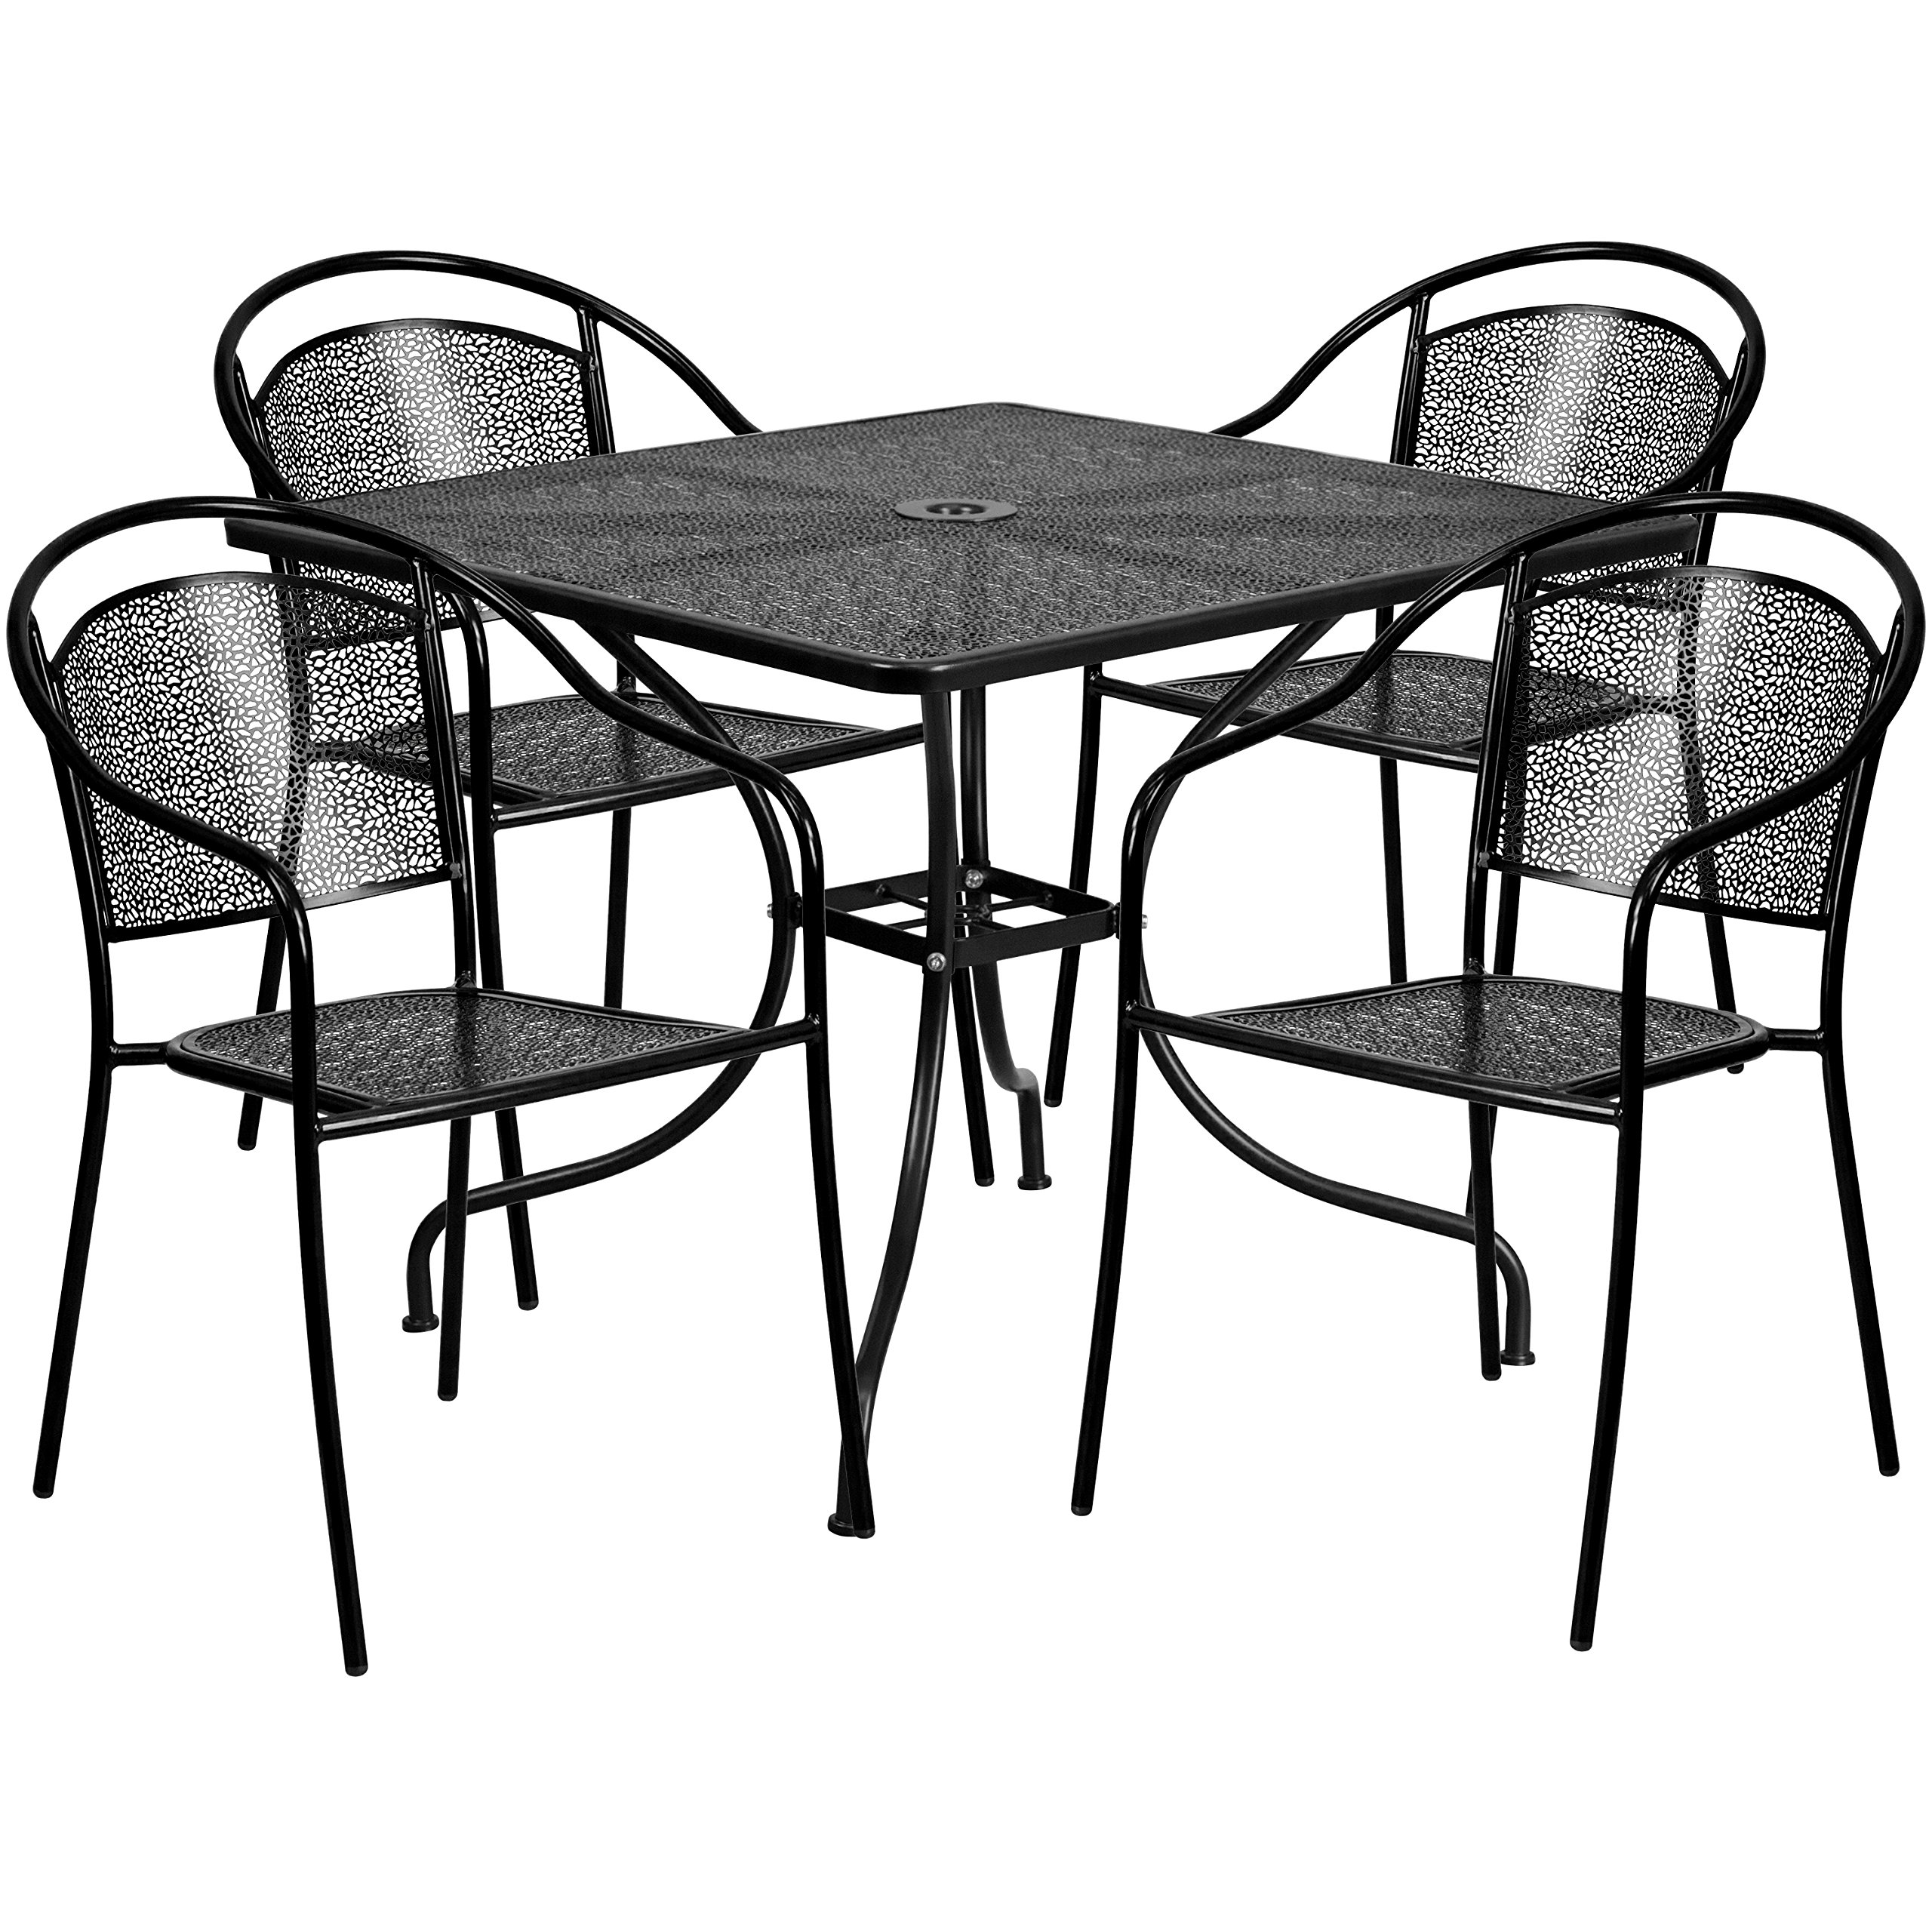 Flash Furniture 35.5'' Square Black Indoor-Outdoor Steel Patio Table Set with 4 Round Back Chairs